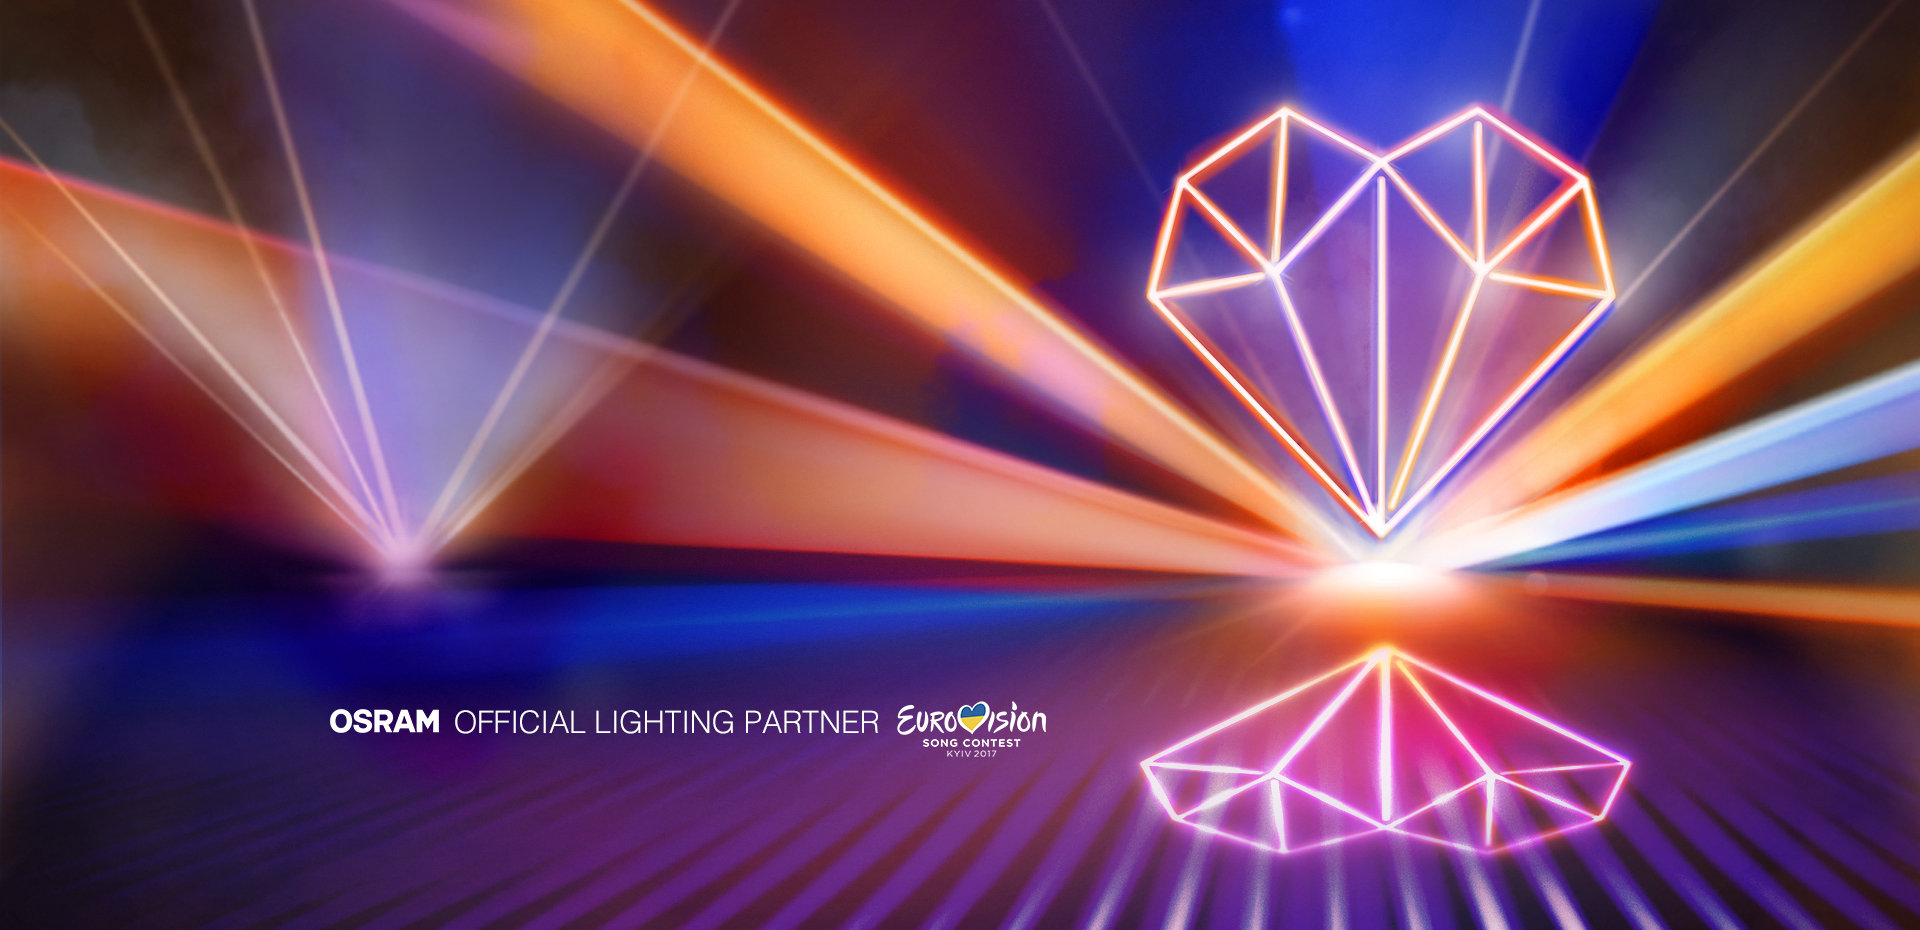 Eurovision Song Contest: Great emotions, great lightshow, light voting inKyiv.